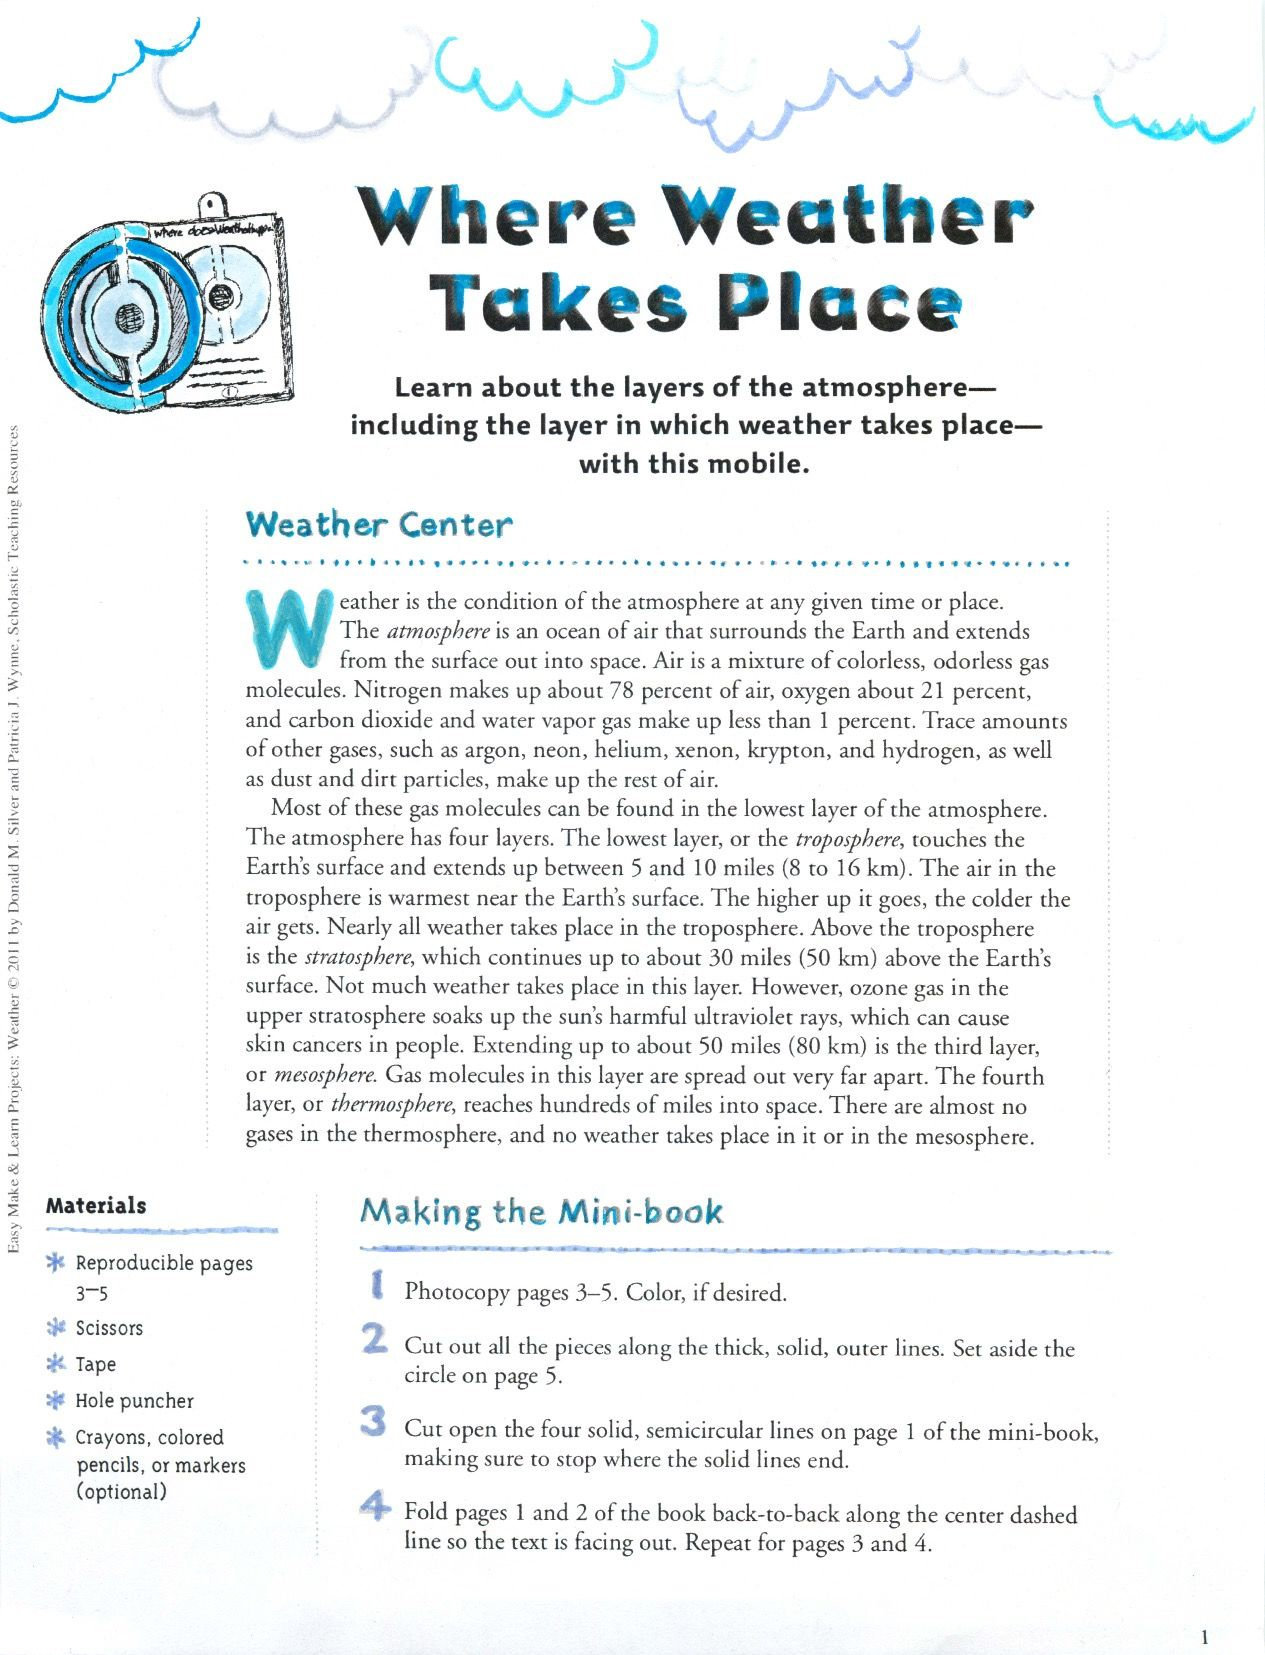 Where Weather Takes Place Make Amp Learn Project Ri 2 1 Ri